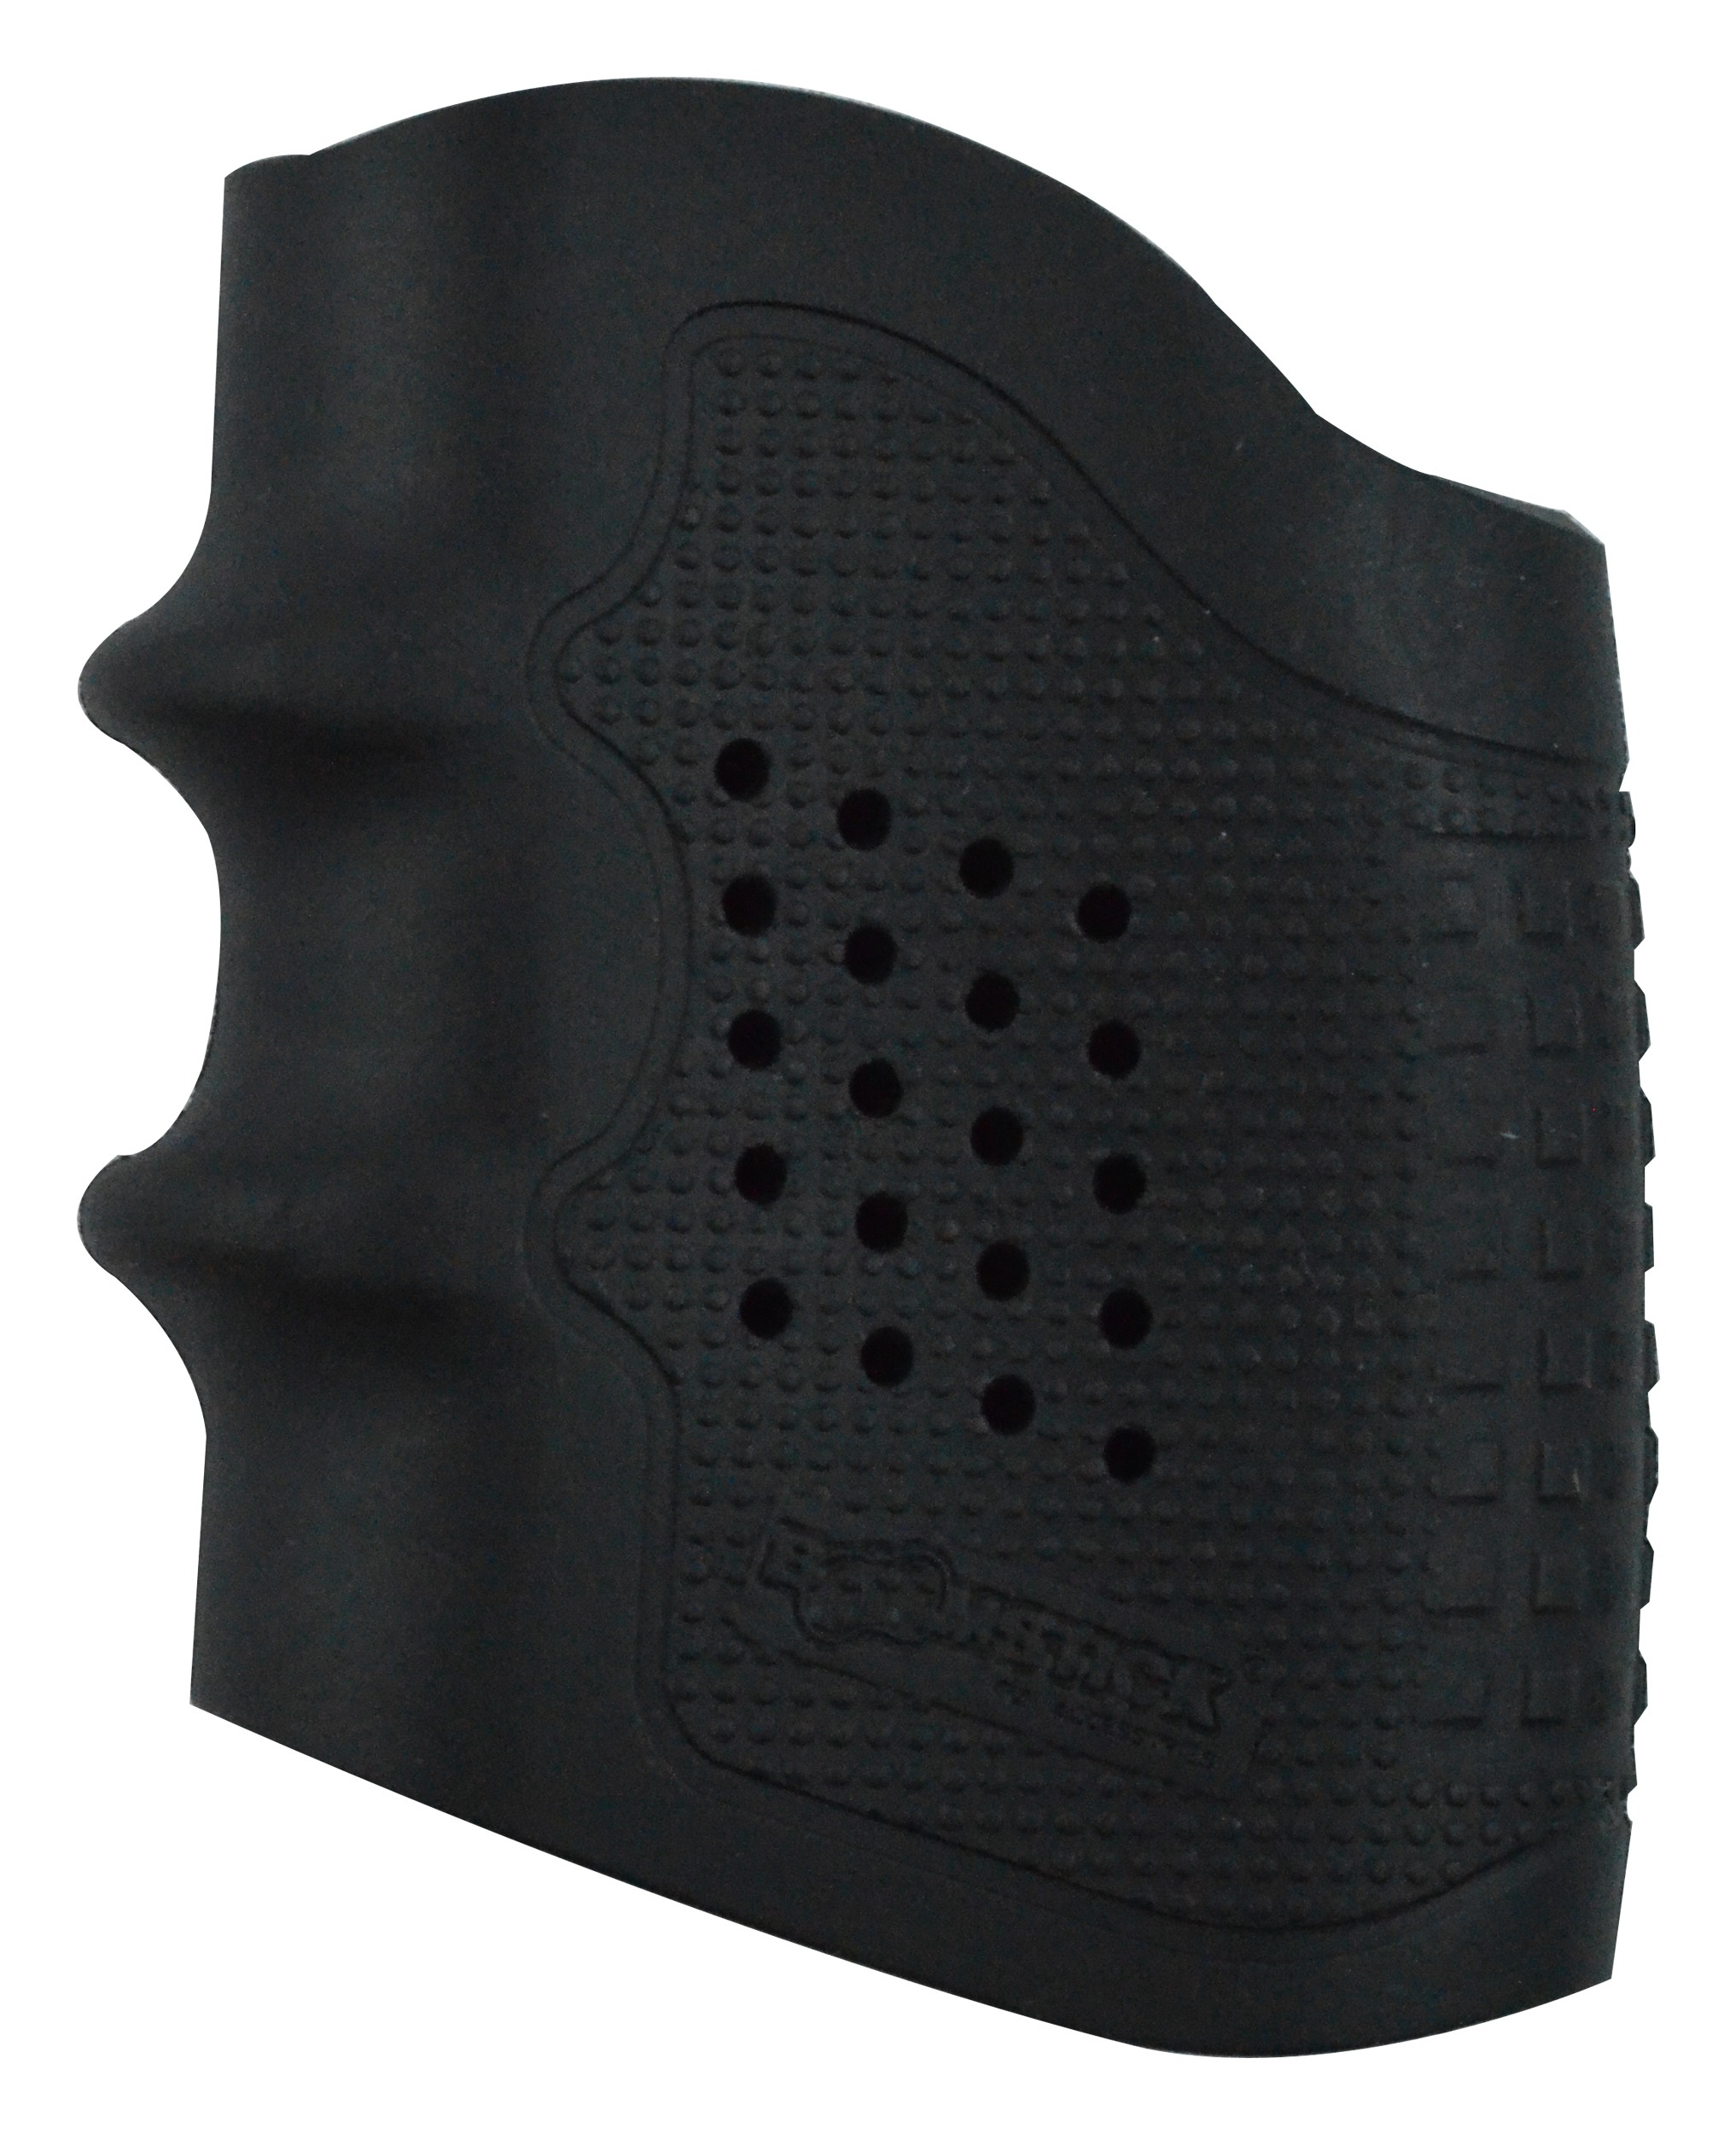 Grip Glove Springfield XD, XD(M) Full Size Frames